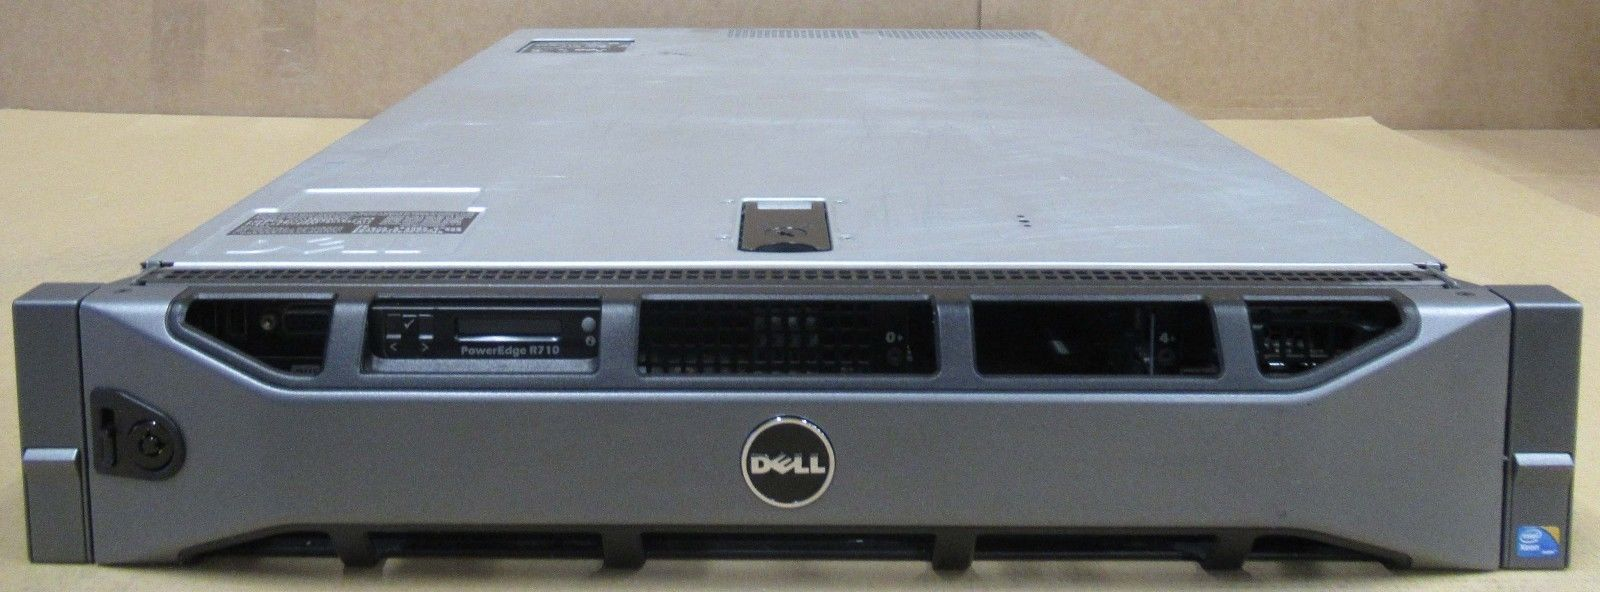 Dell PowerEdge R710 2x Quad-Core XEON X5550 2 66GHz 8x 2 5